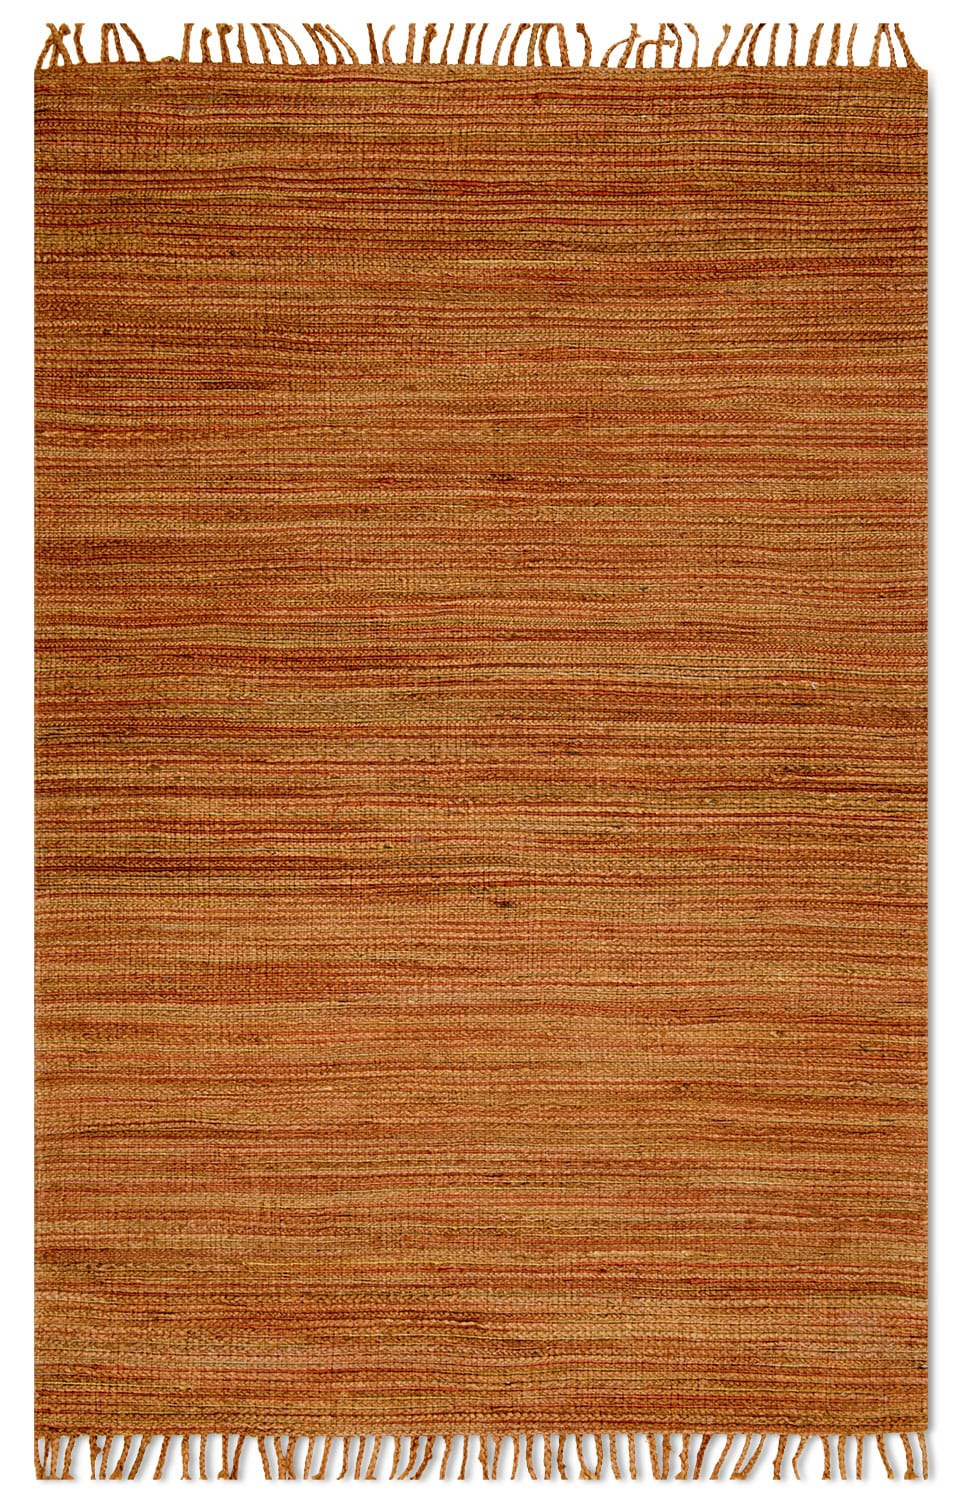 Rugs - Drake 8' x 10' Rug - Spice